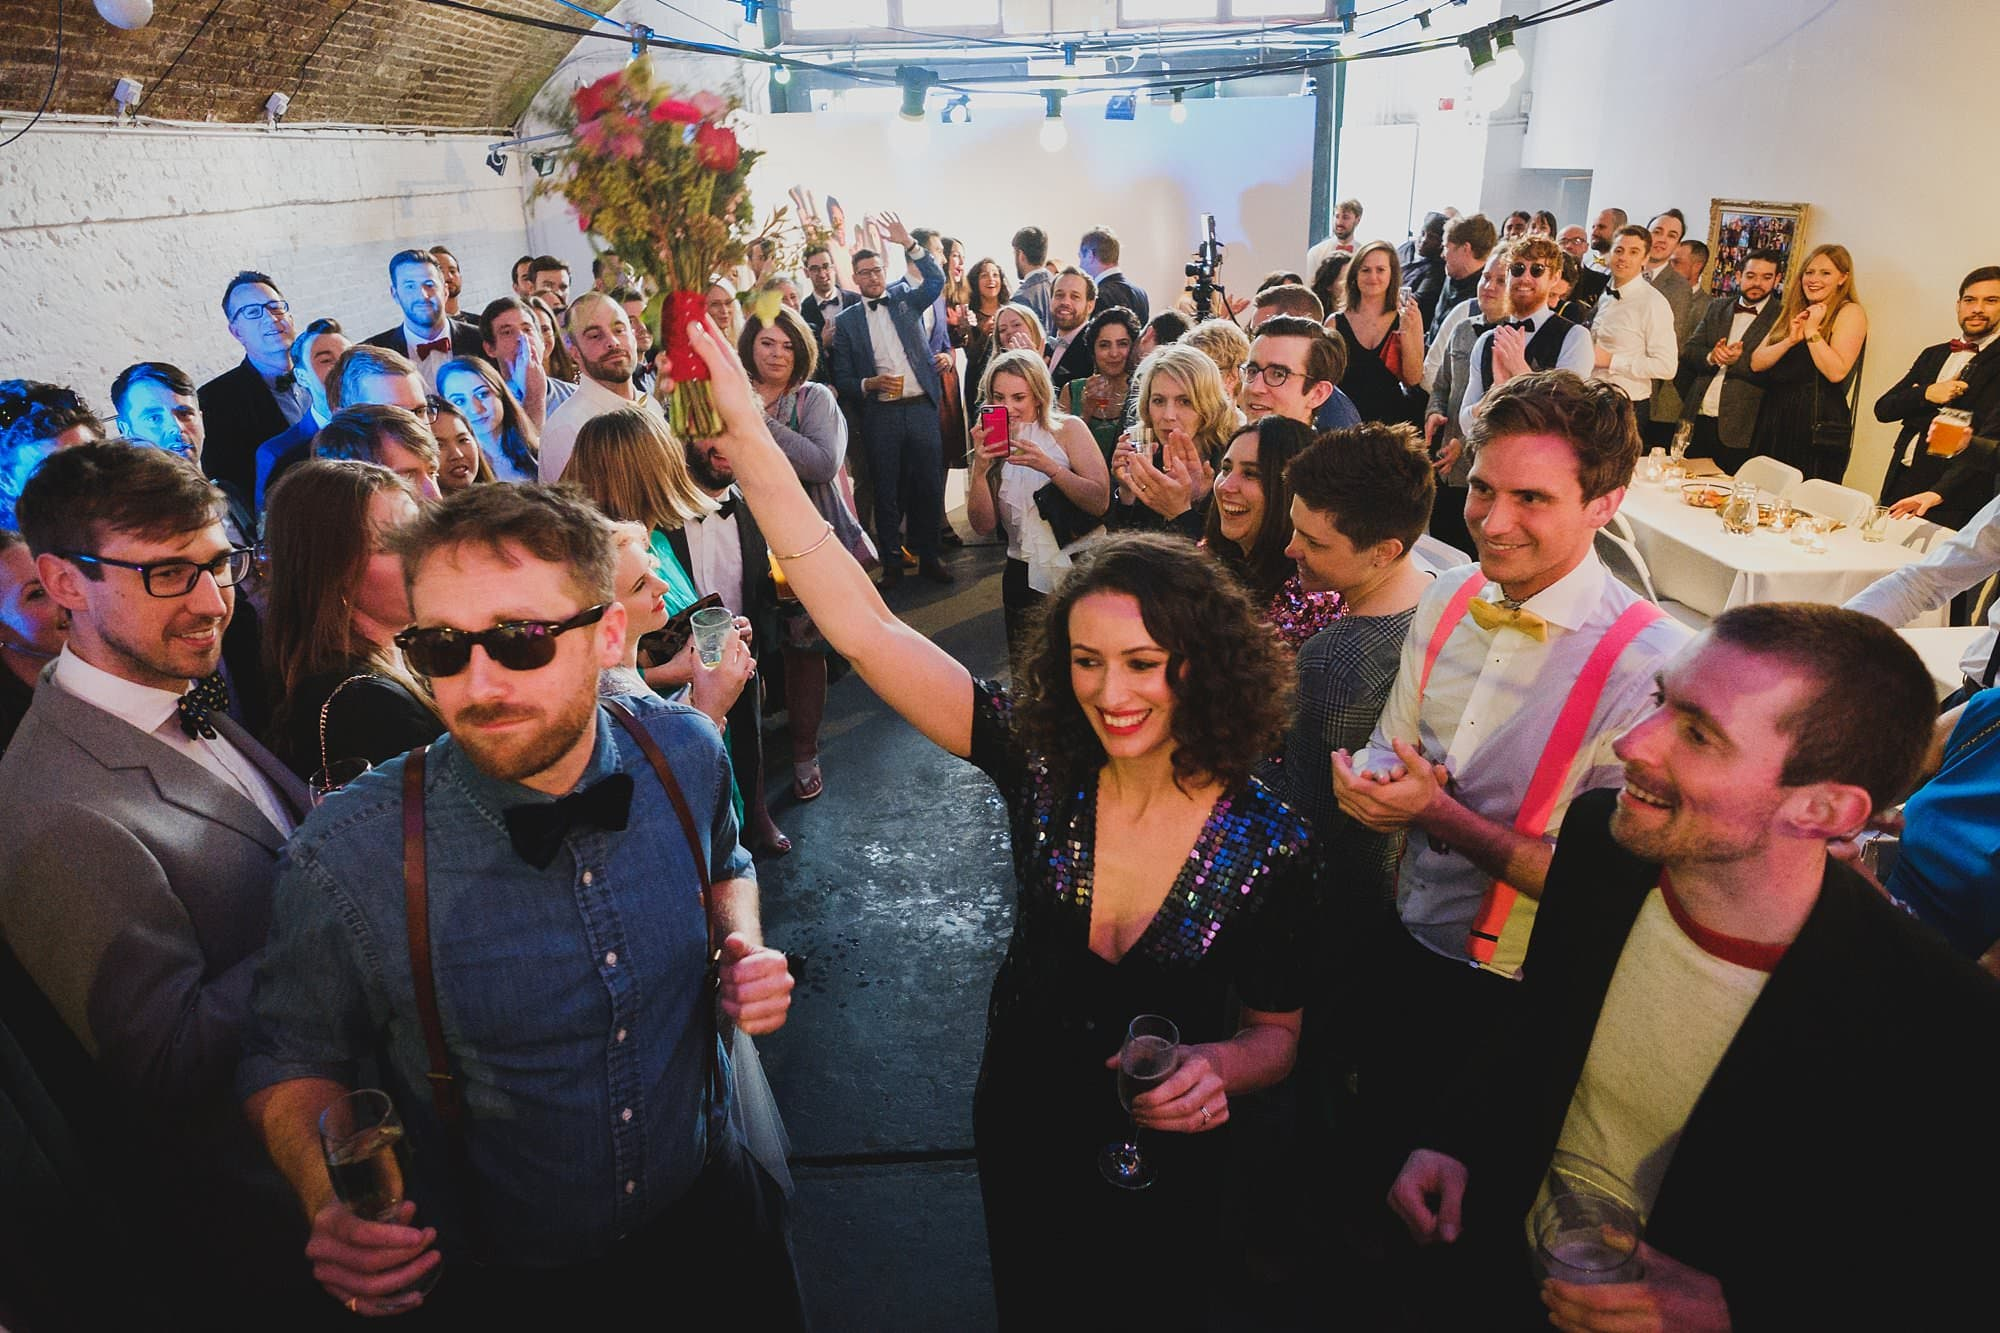 london party photographer hoxton arches 007 - An Elopement Reception at Hoxton Arches